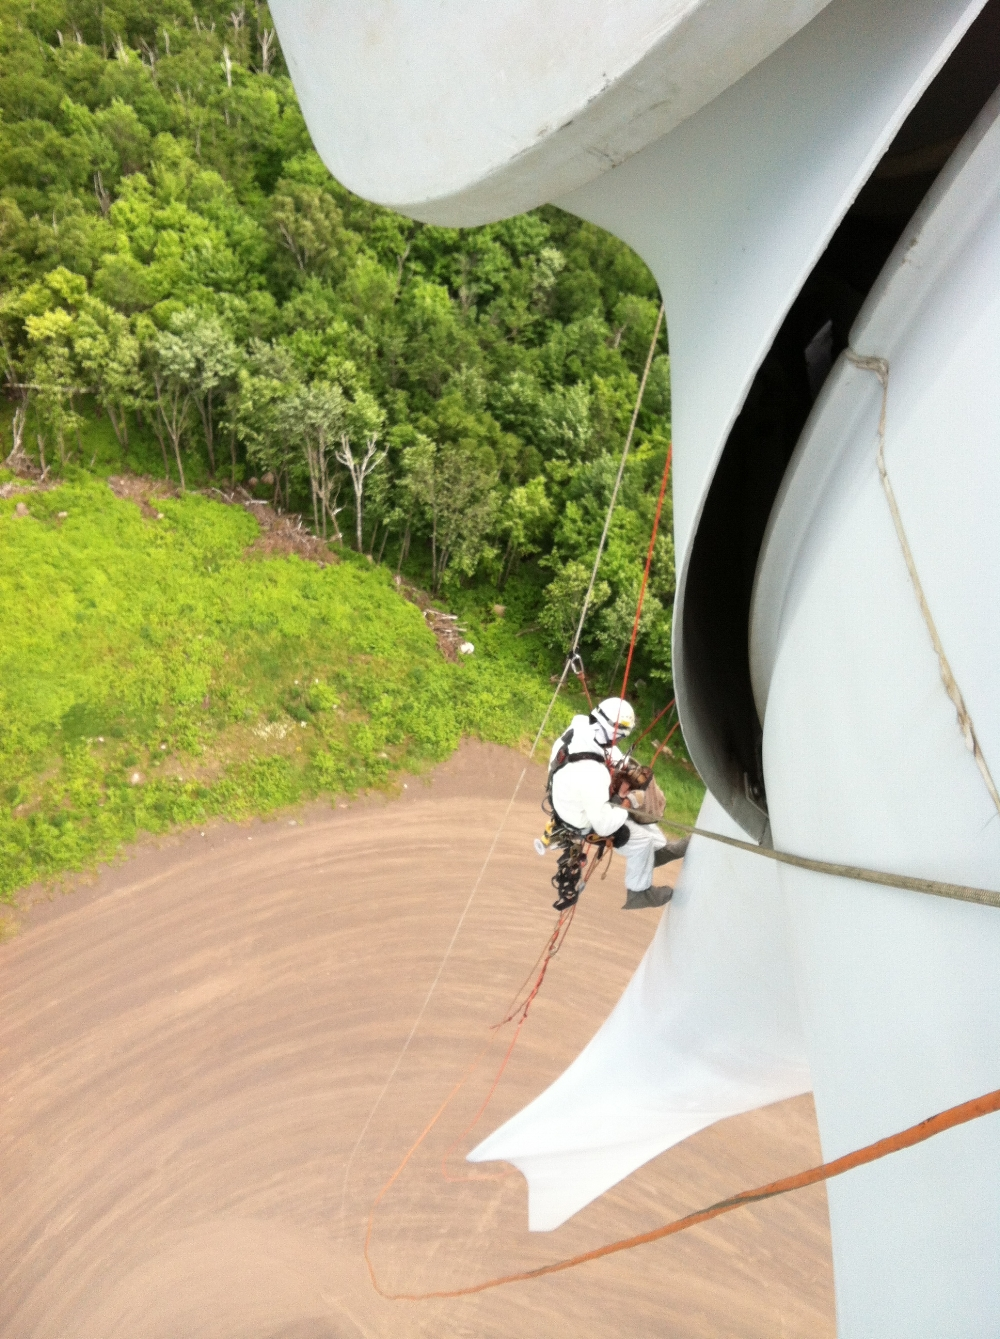 SATS' technicians providing access solutions on wind turbine repairs.